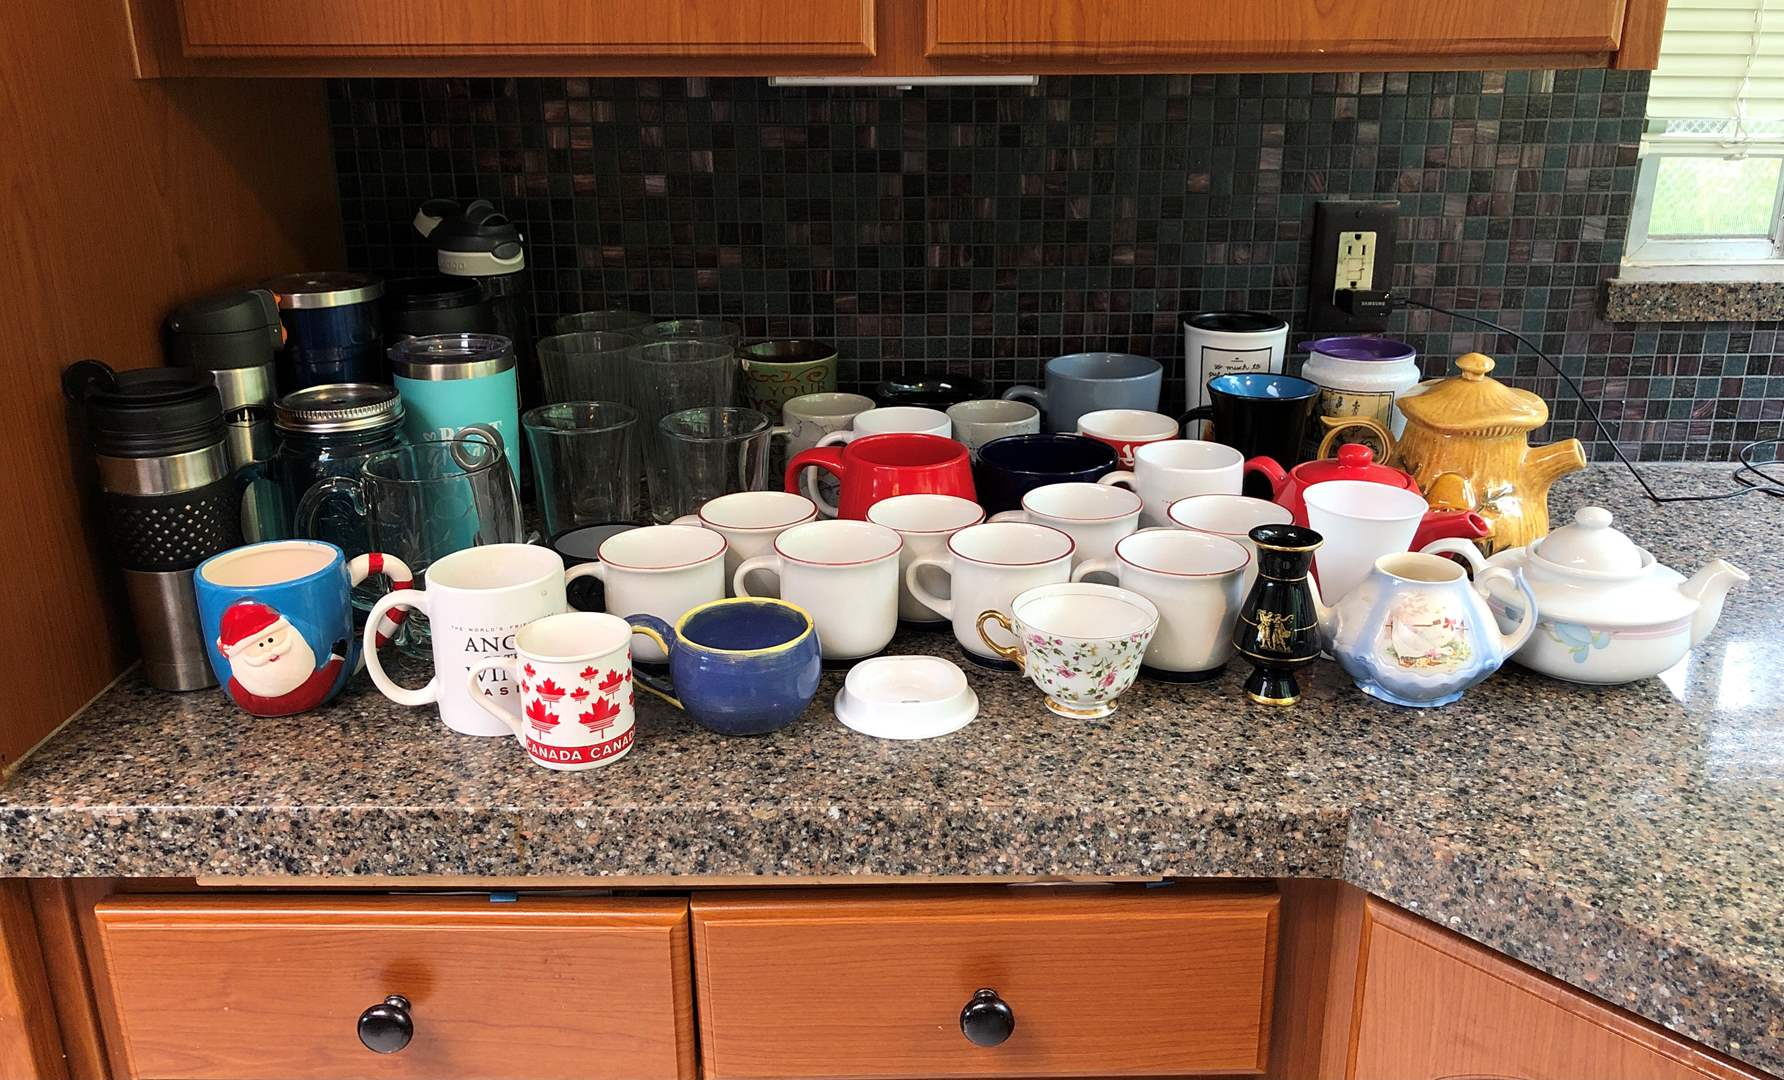 Lot # 66 - Large Selection of Coffee Mugs, Misc. To-Go Cups, Awesome Mushroom Tea Pot  (main image)